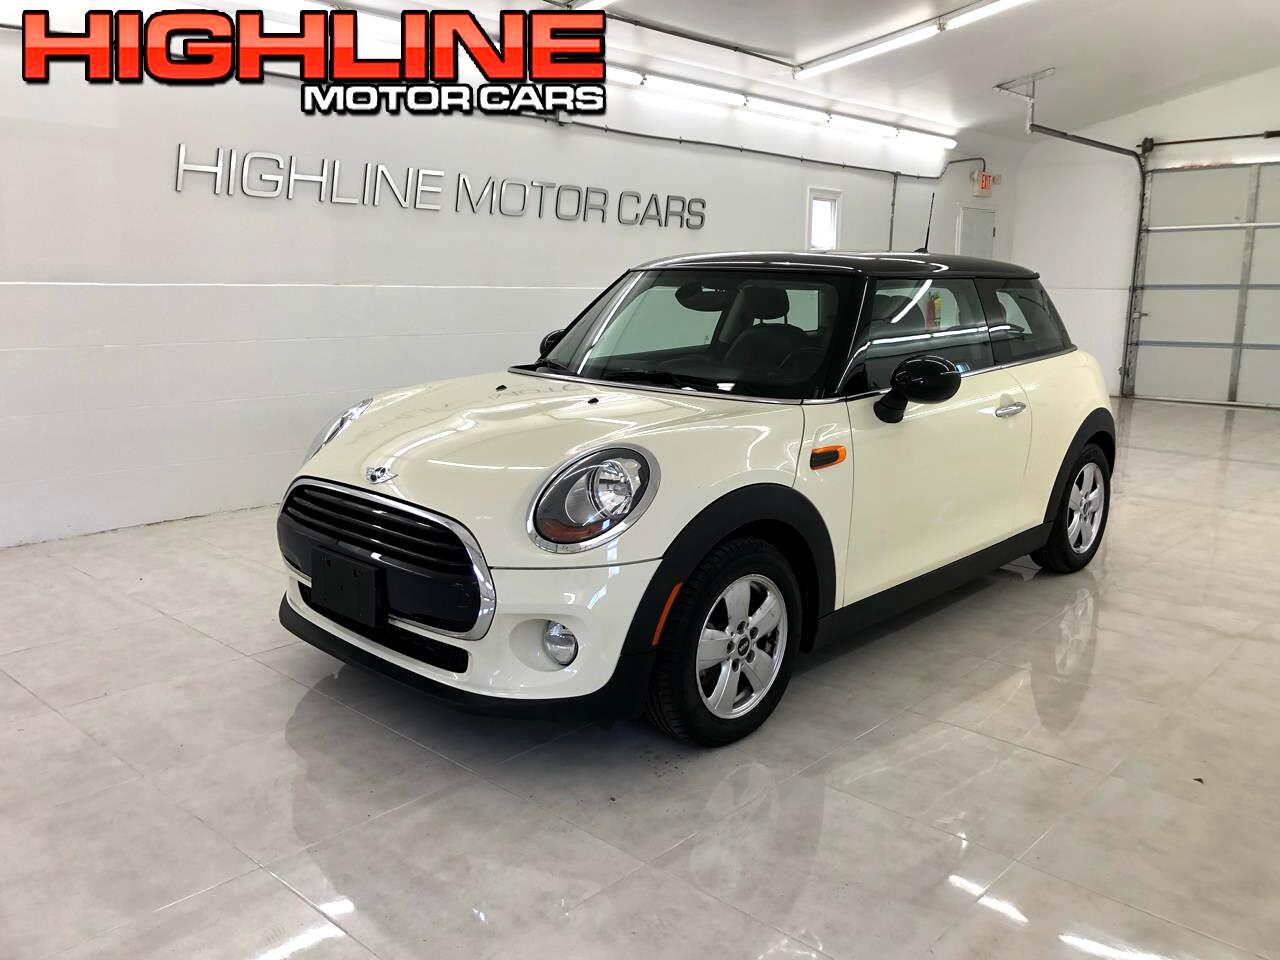 Used Mini Hardtop 2 Door Southampton Township Nj